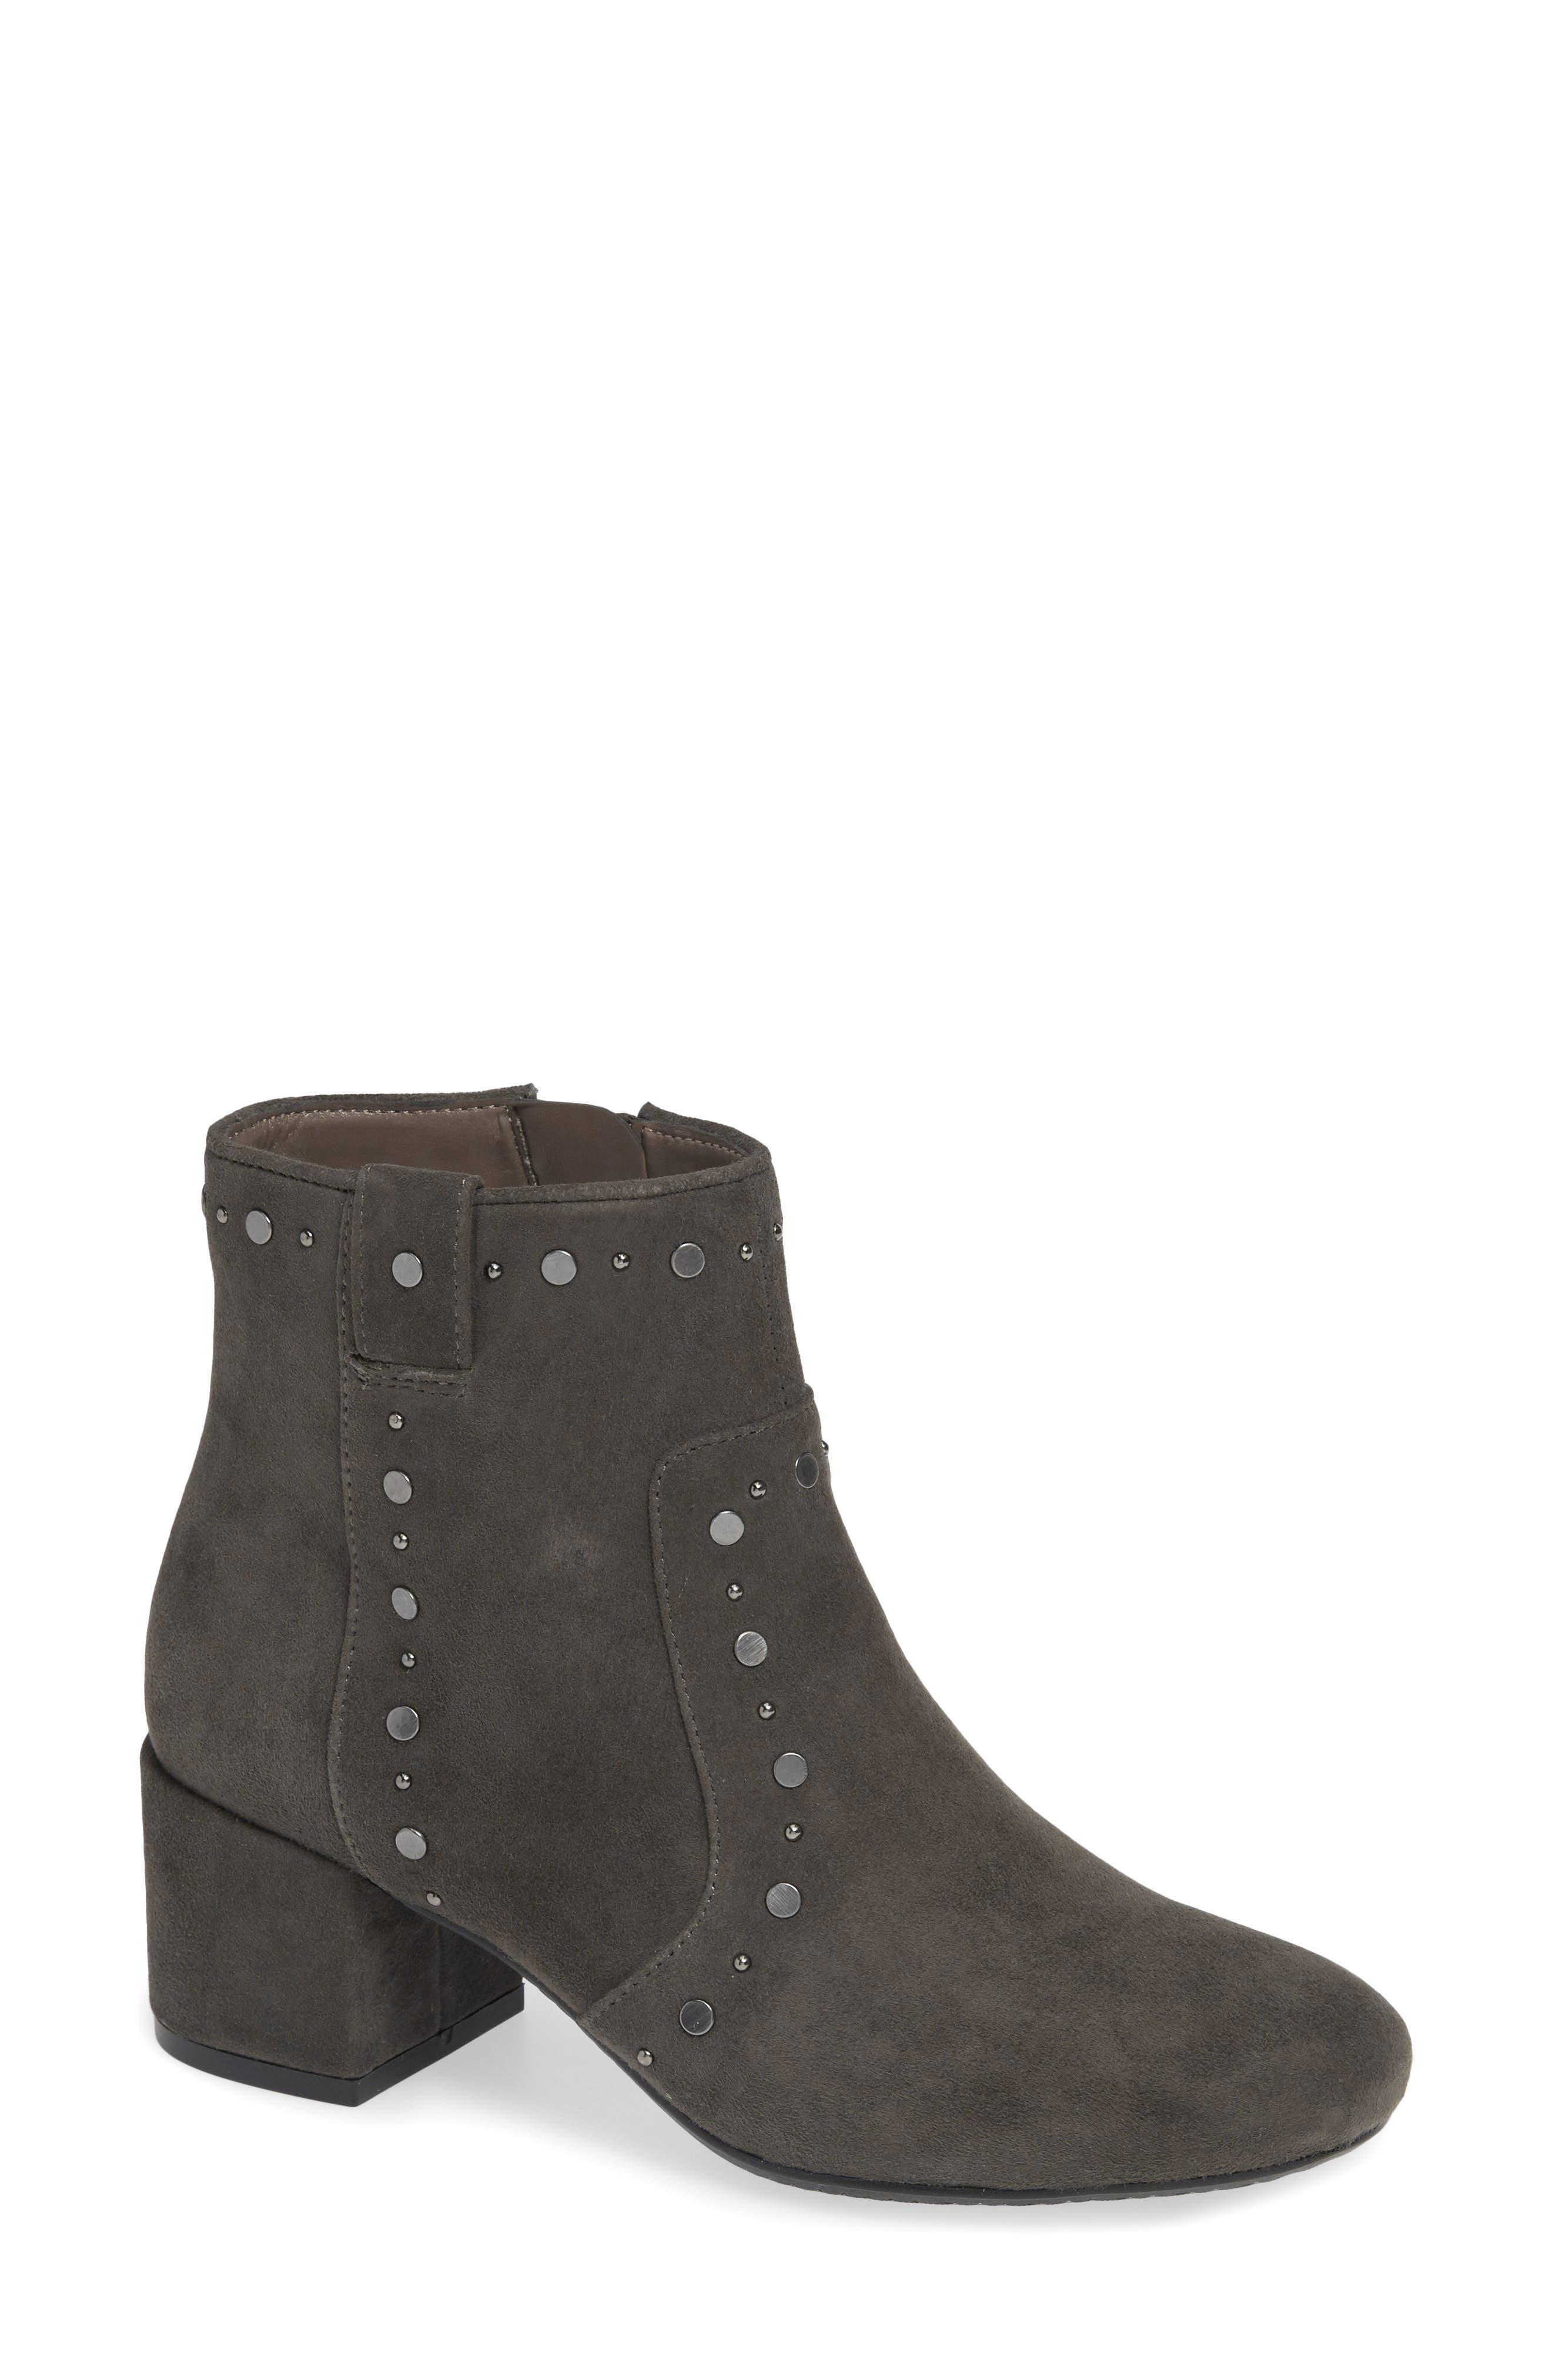 Don Bootie,                             Main thumbnail 1, color,                             CHARCOAL SUEDE